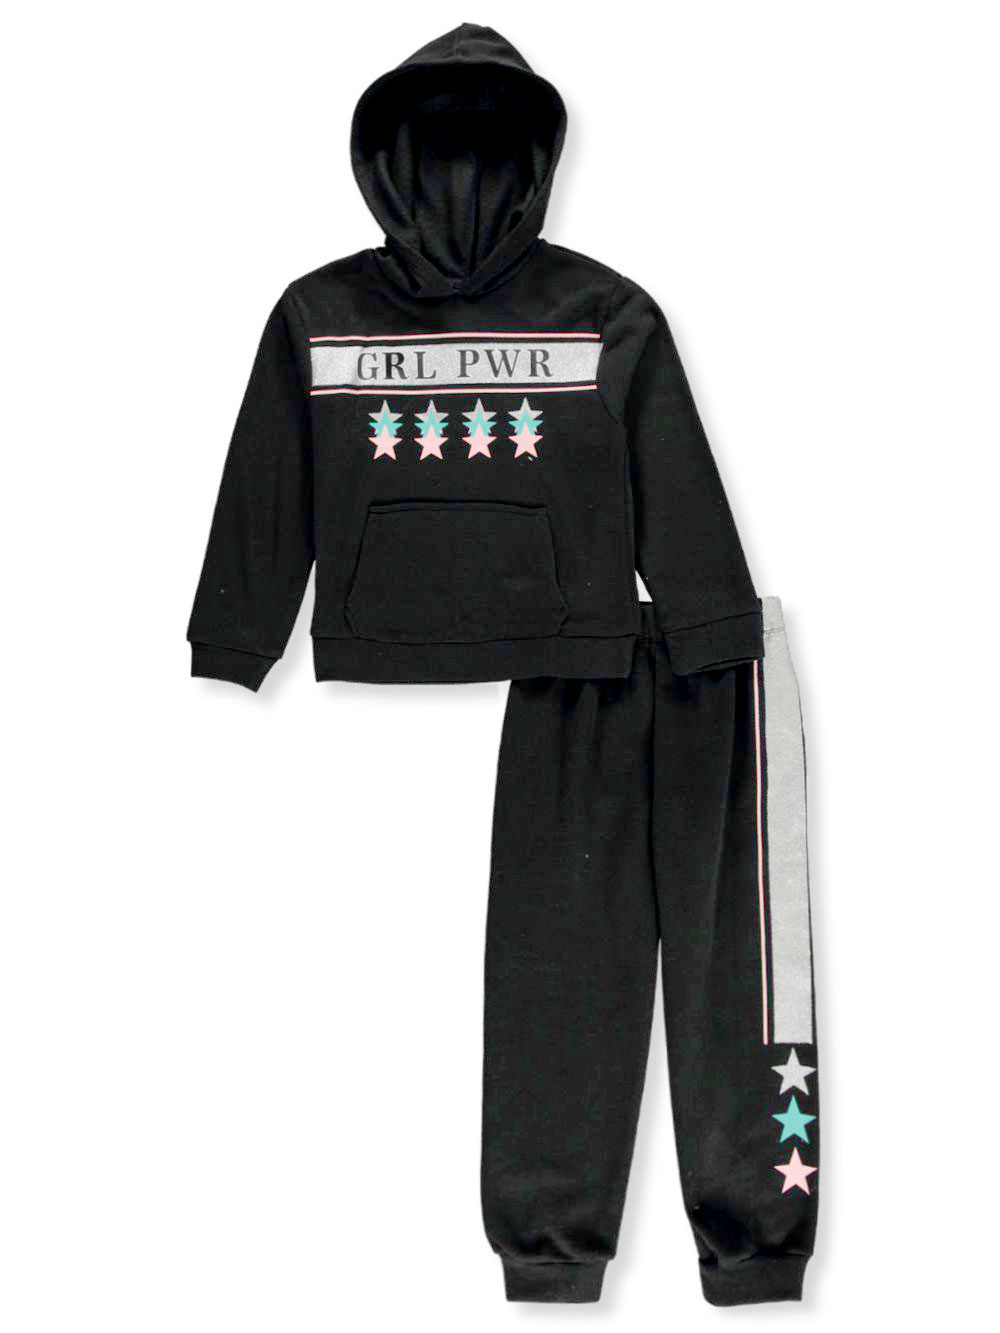 Girls' Grl Pwr 2-Piece Sweatsuit Outfit